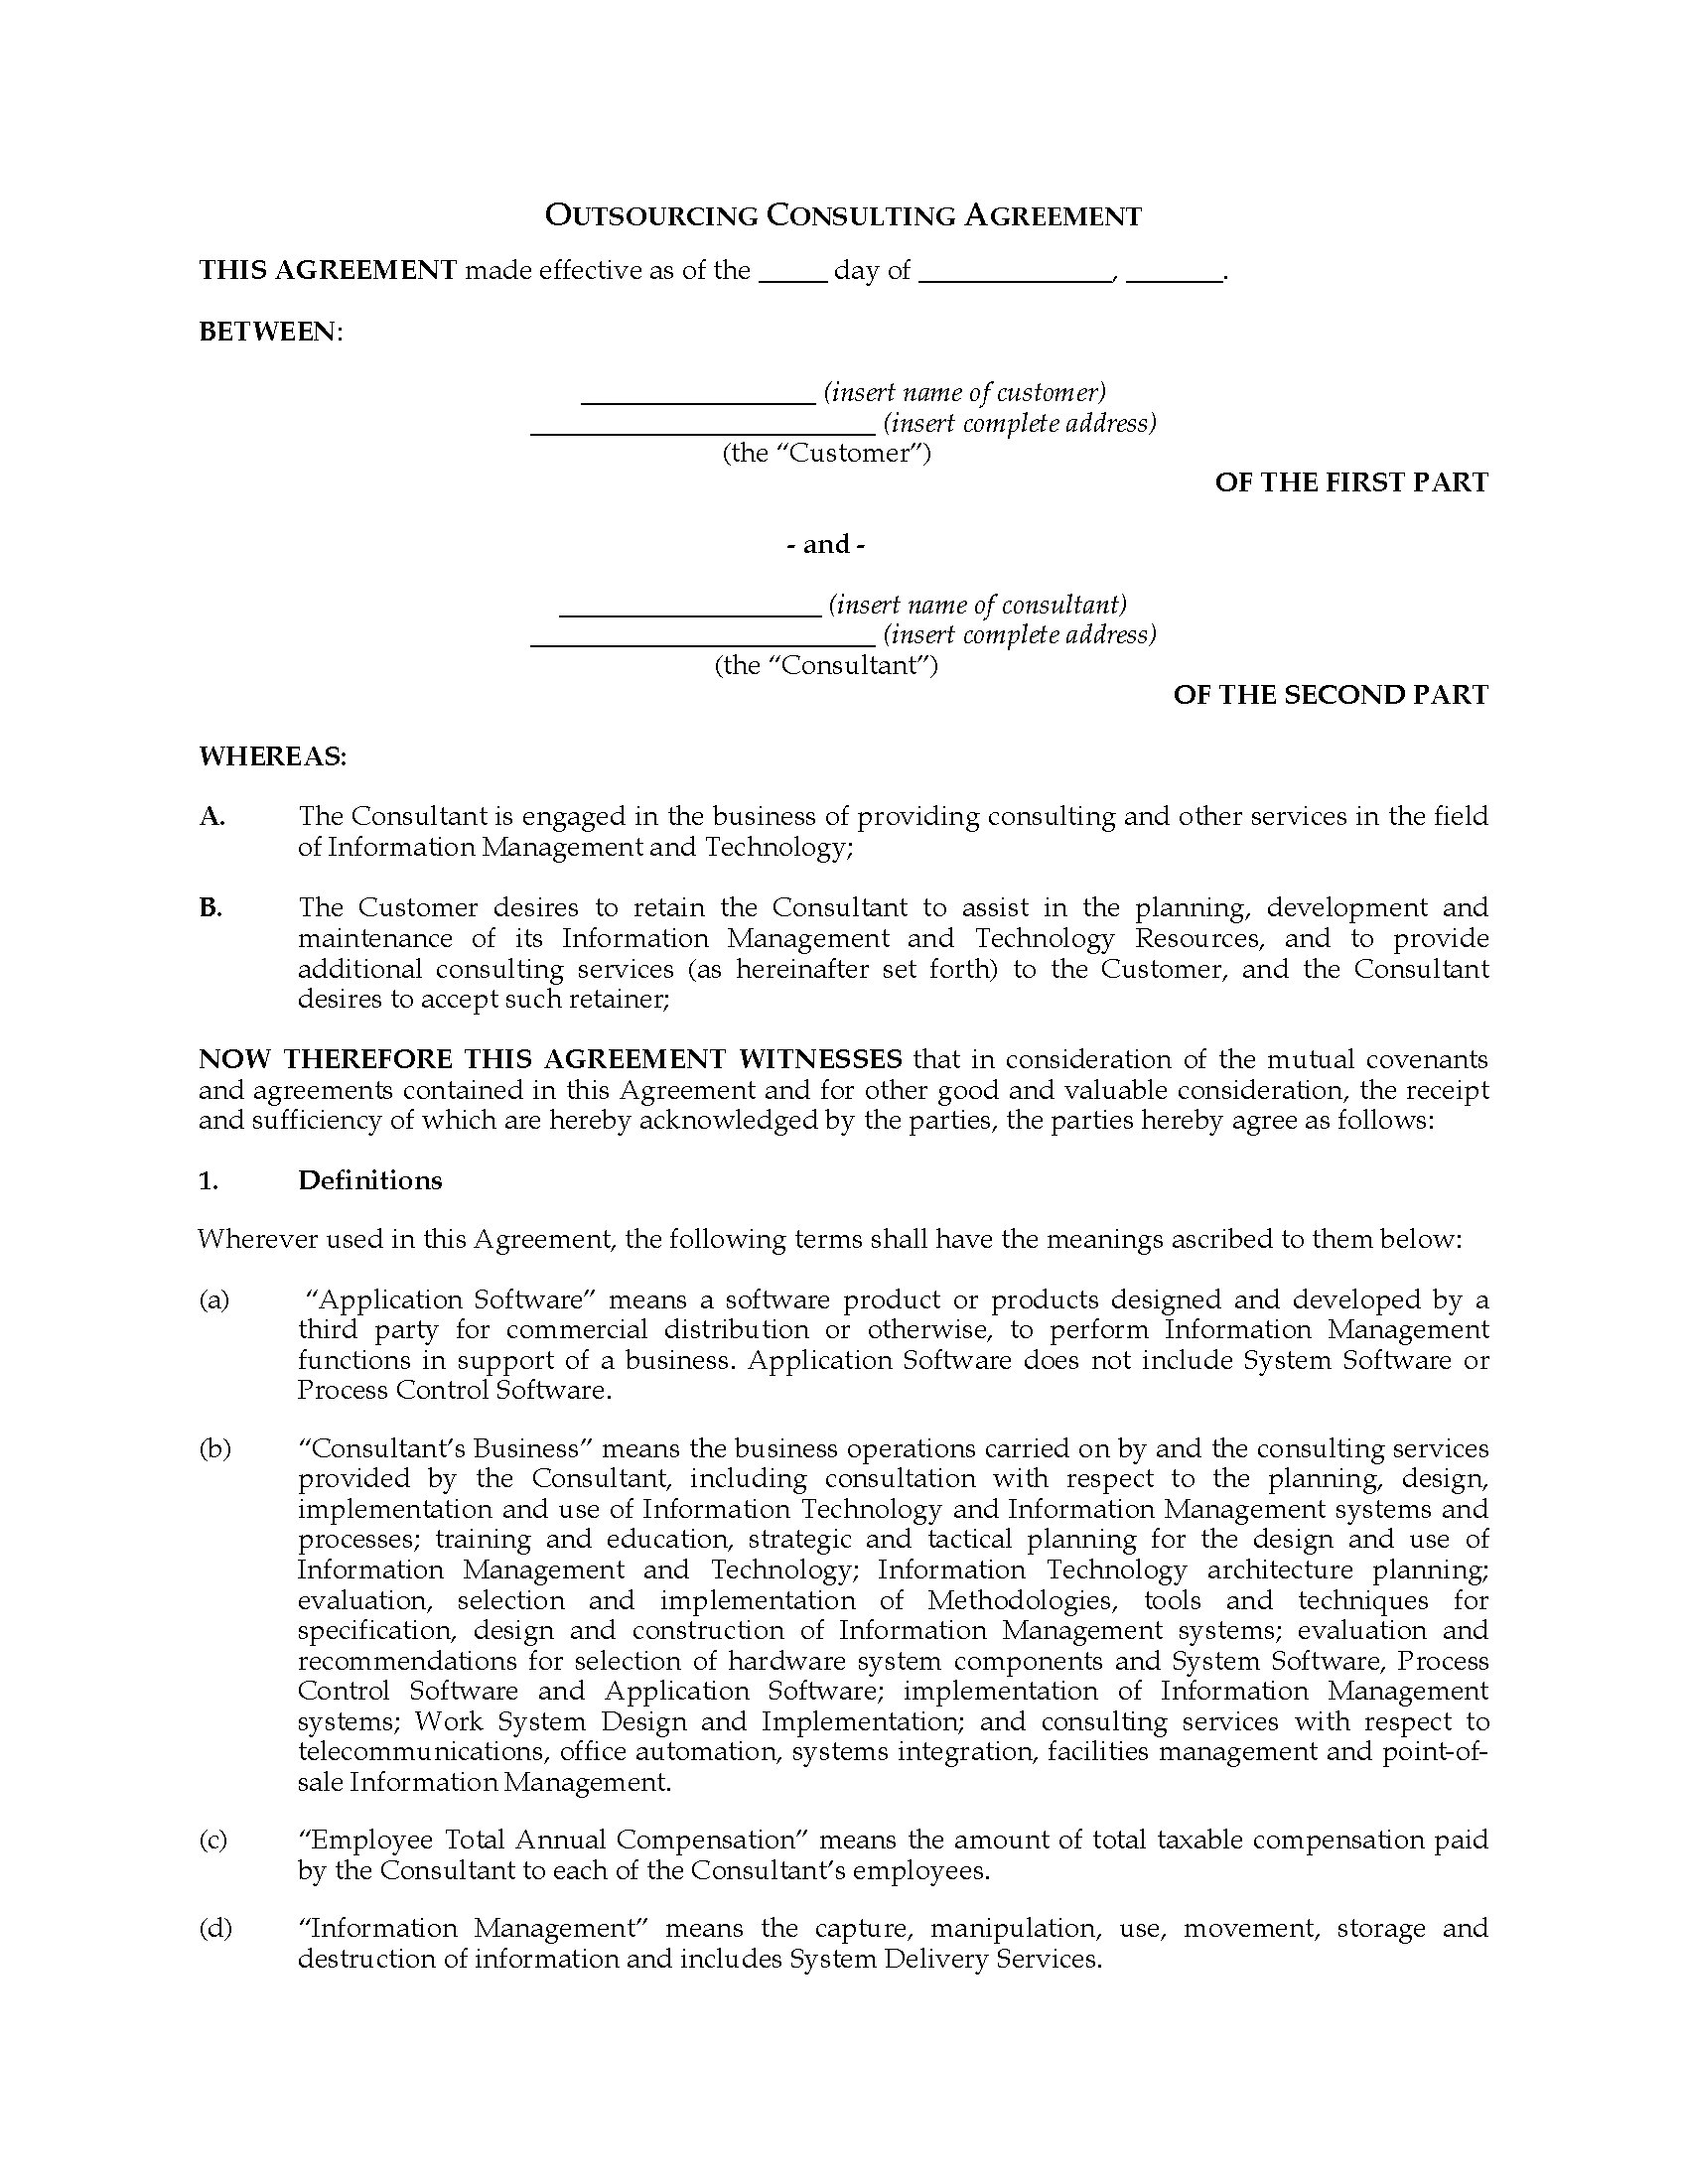 USA Information Technology Outsourcing Consulting Agreement – Consulting Agreement